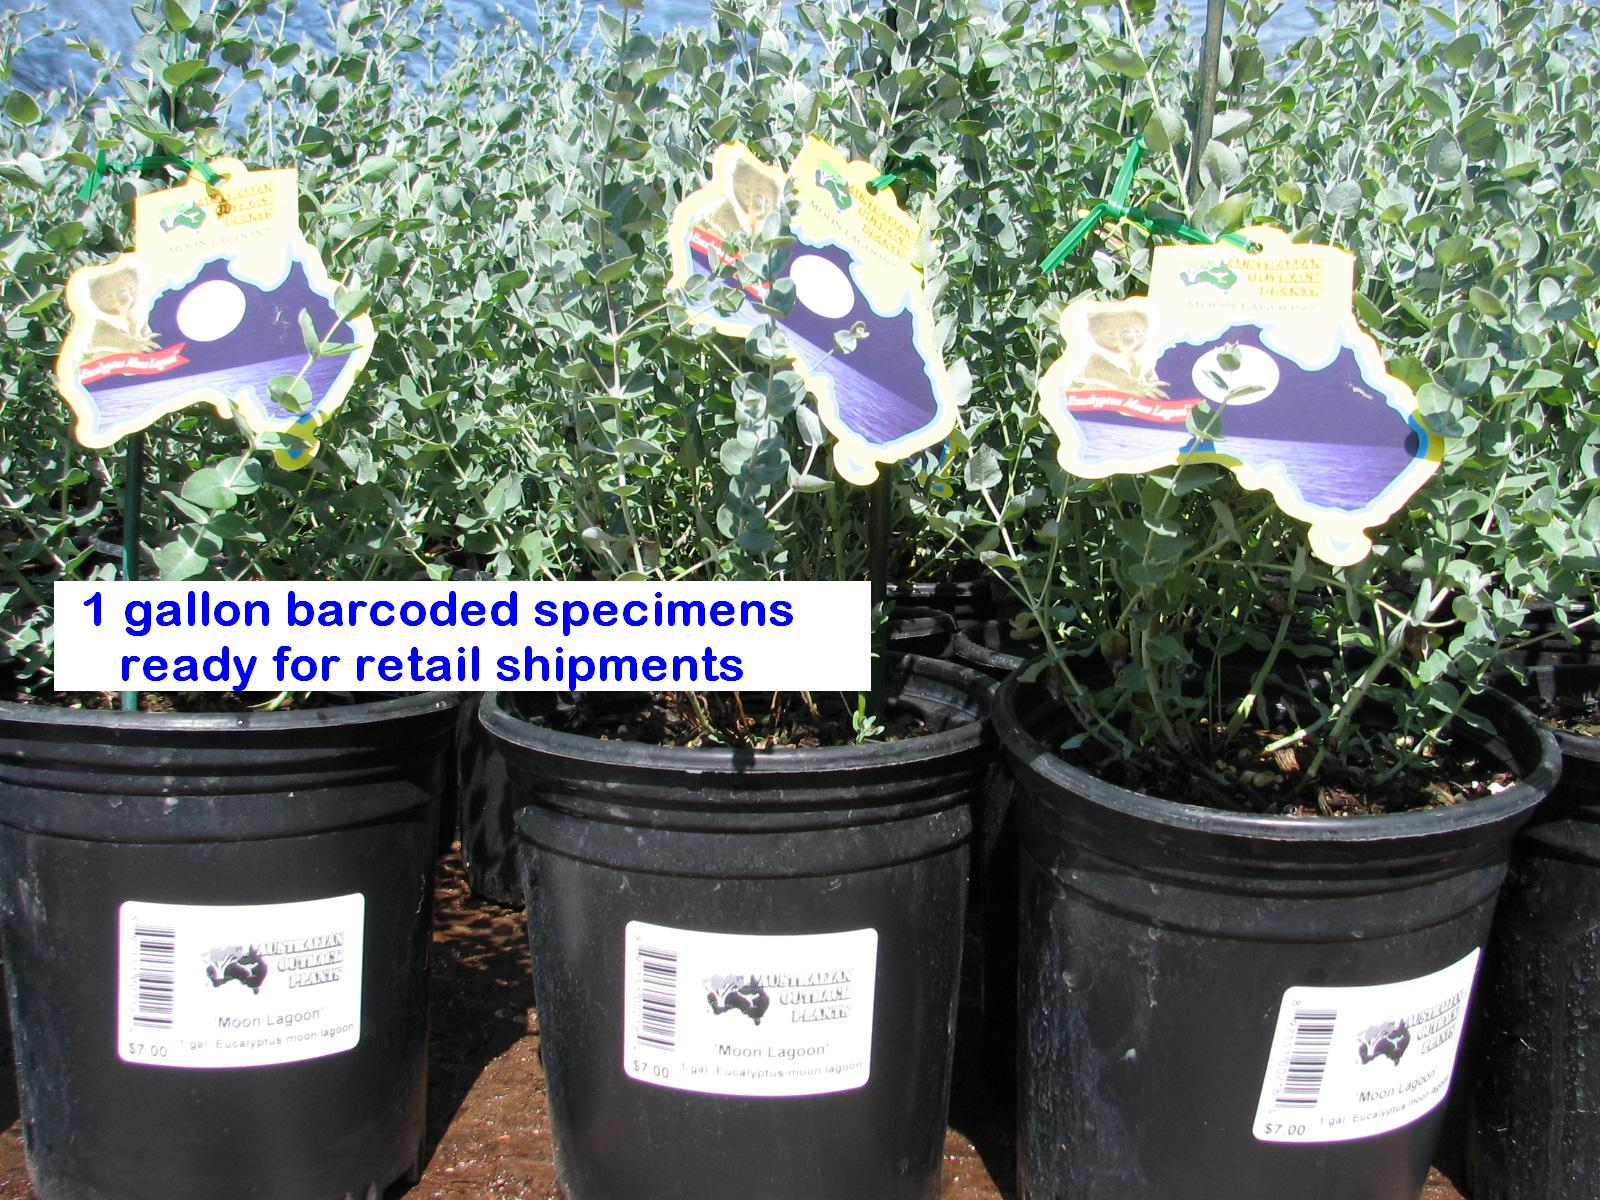 oe 1 gal MOON LAGOONS barcoded labelled ready for sale.jpg